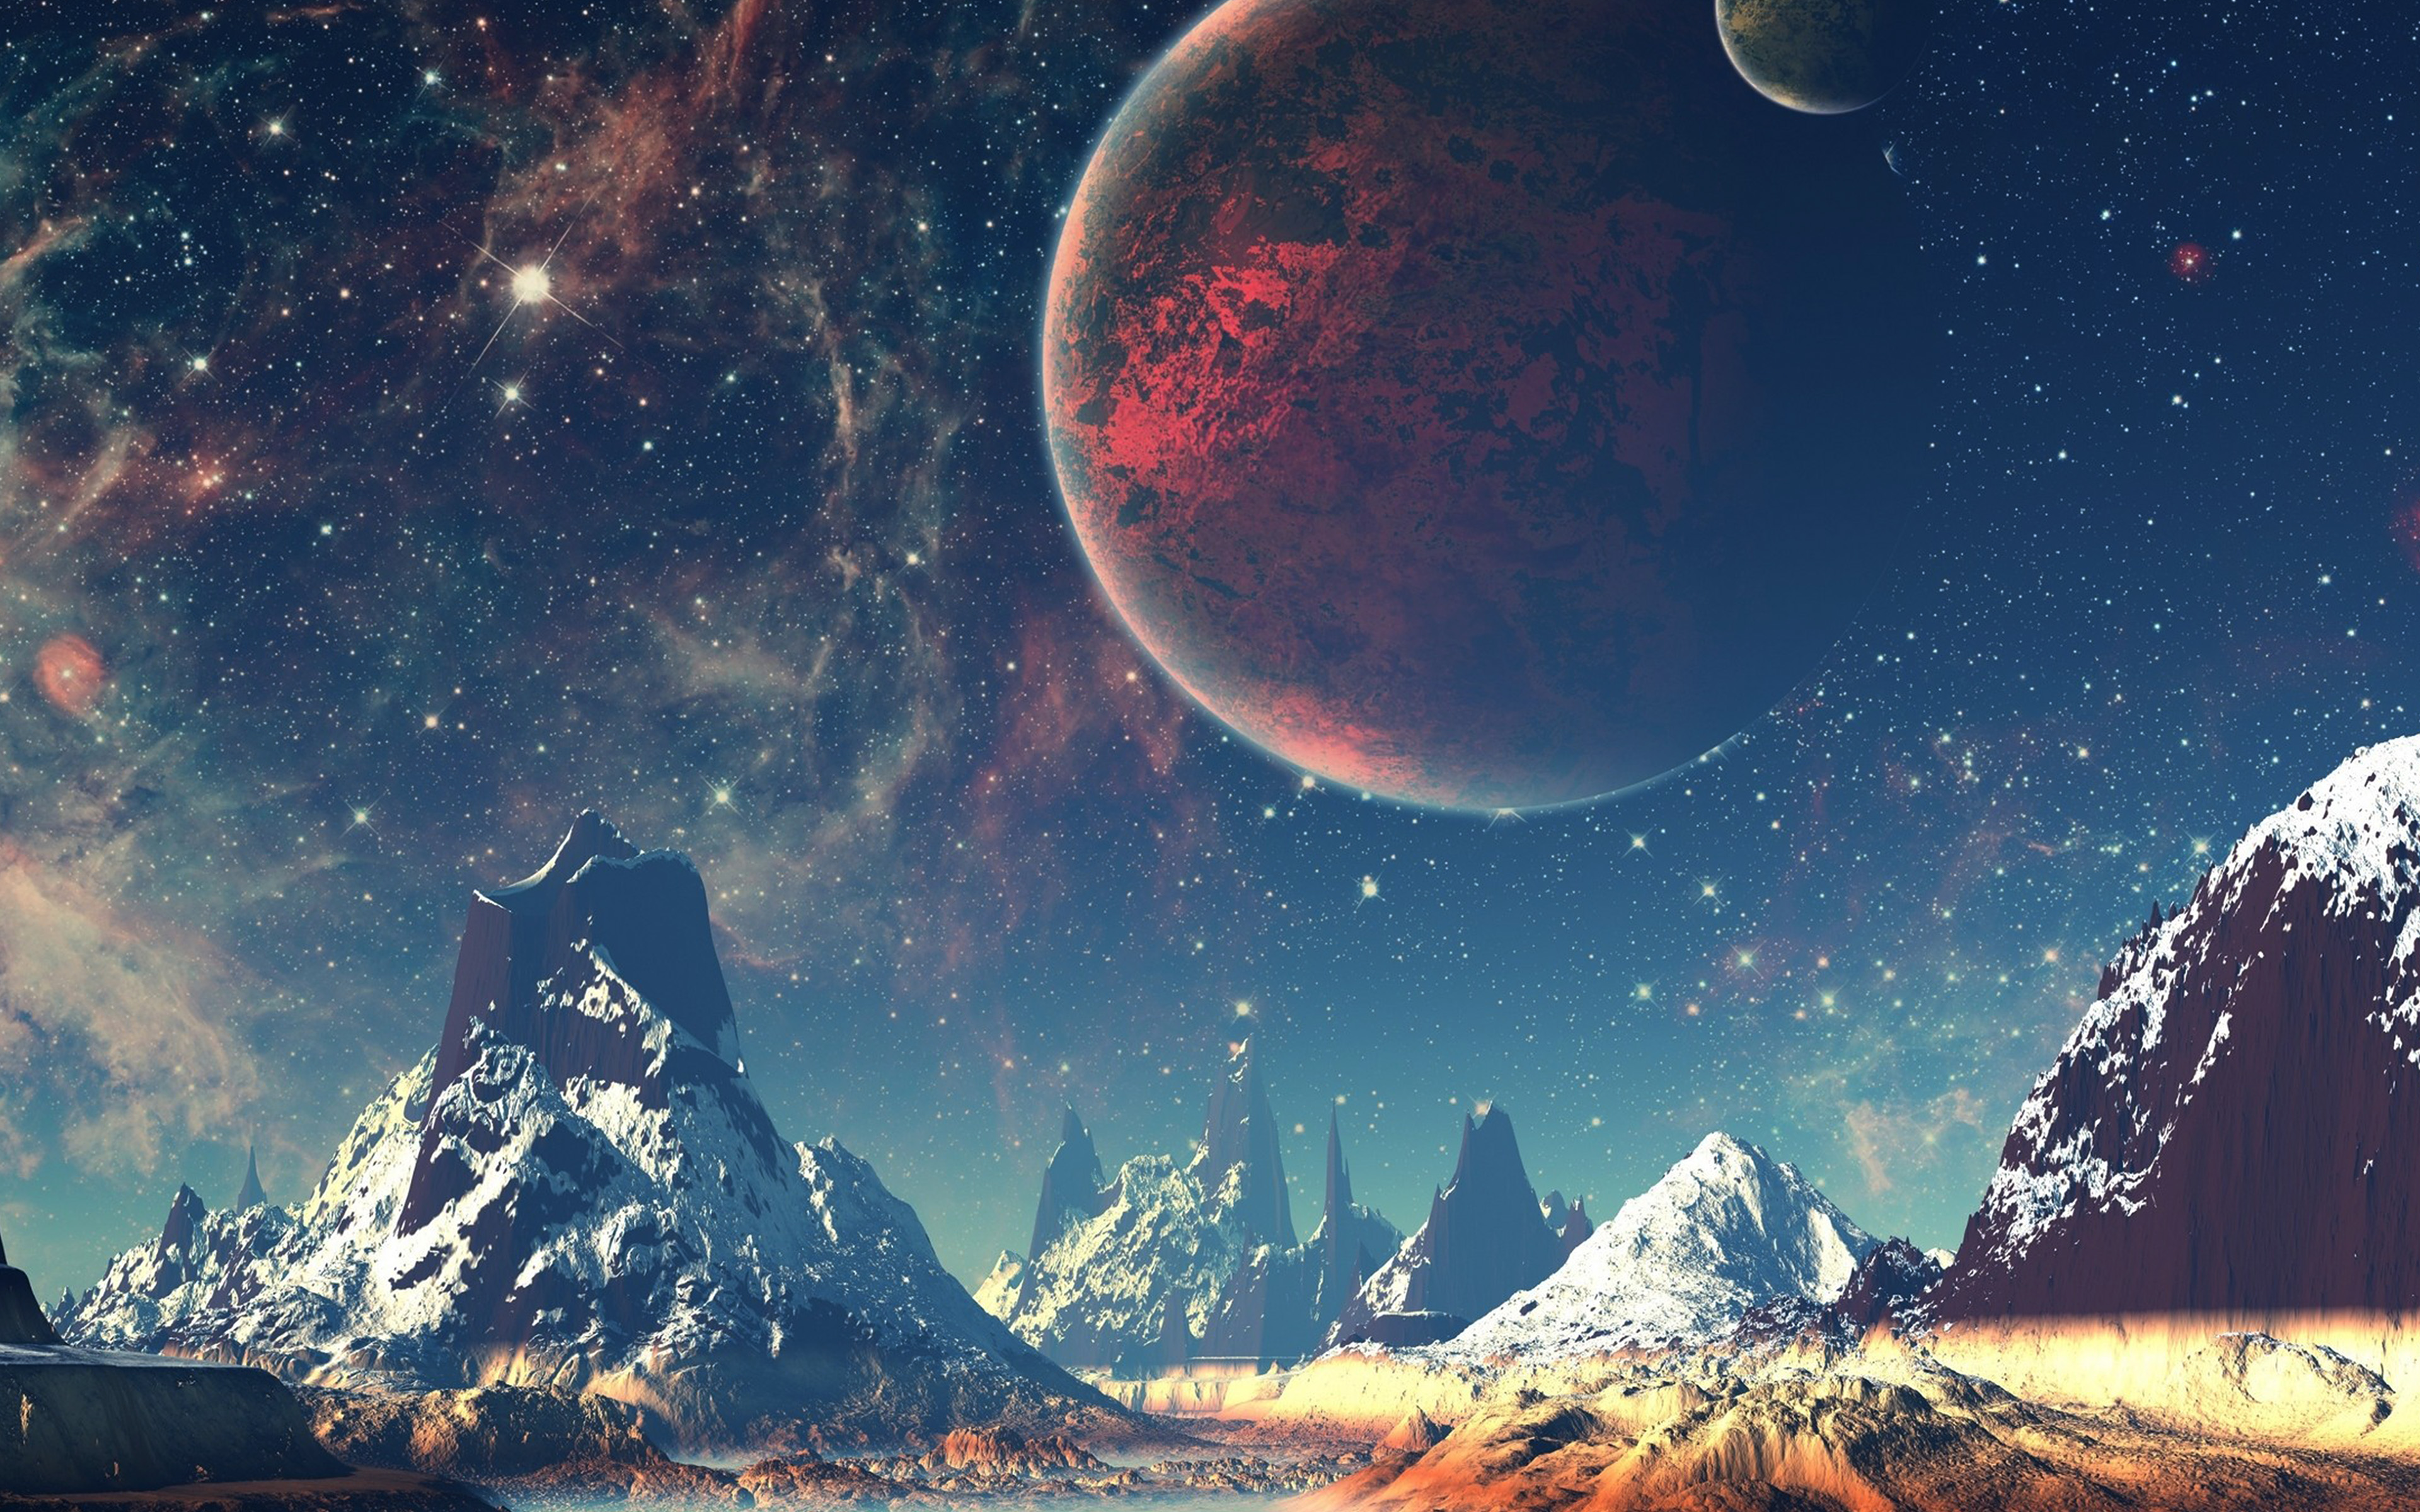 aq10-dream-space-world-mountain-sky-star-illustration ...